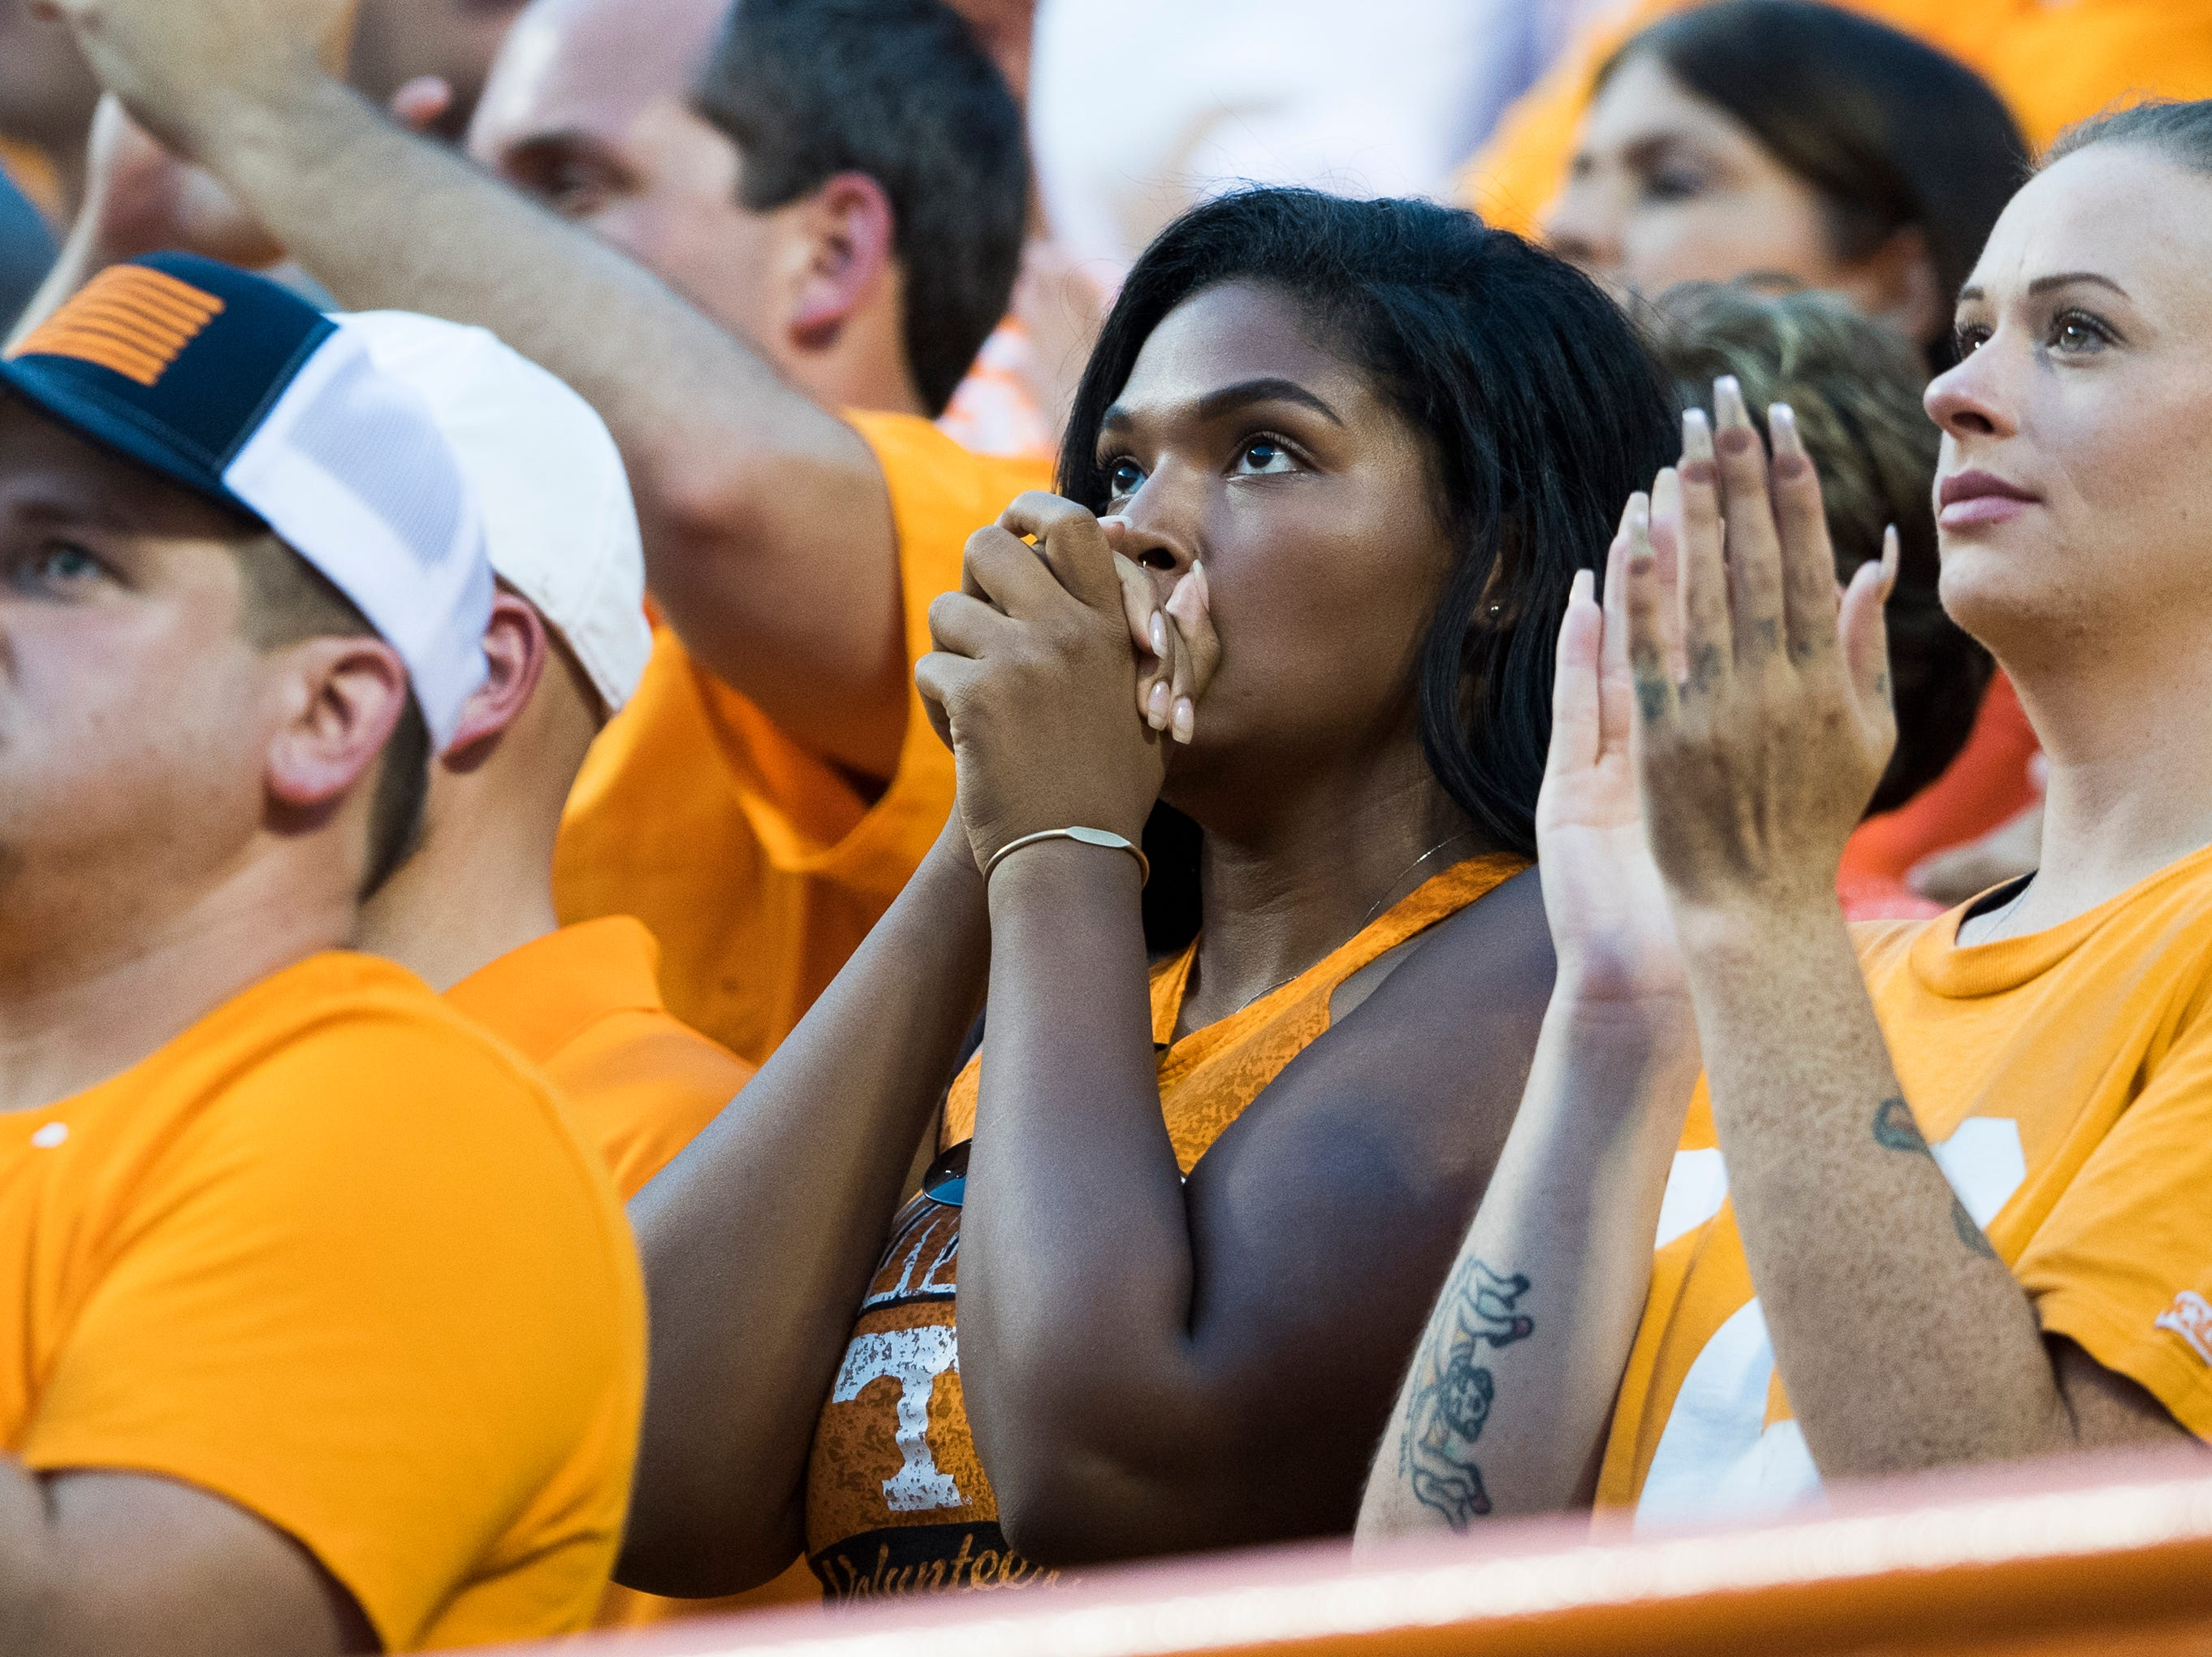 A Vol fan watches the game in the stands during a game between Tennessee and Florida at Neyland Stadium in Knoxville, Tennessee on Saturday, September 22, 2018.